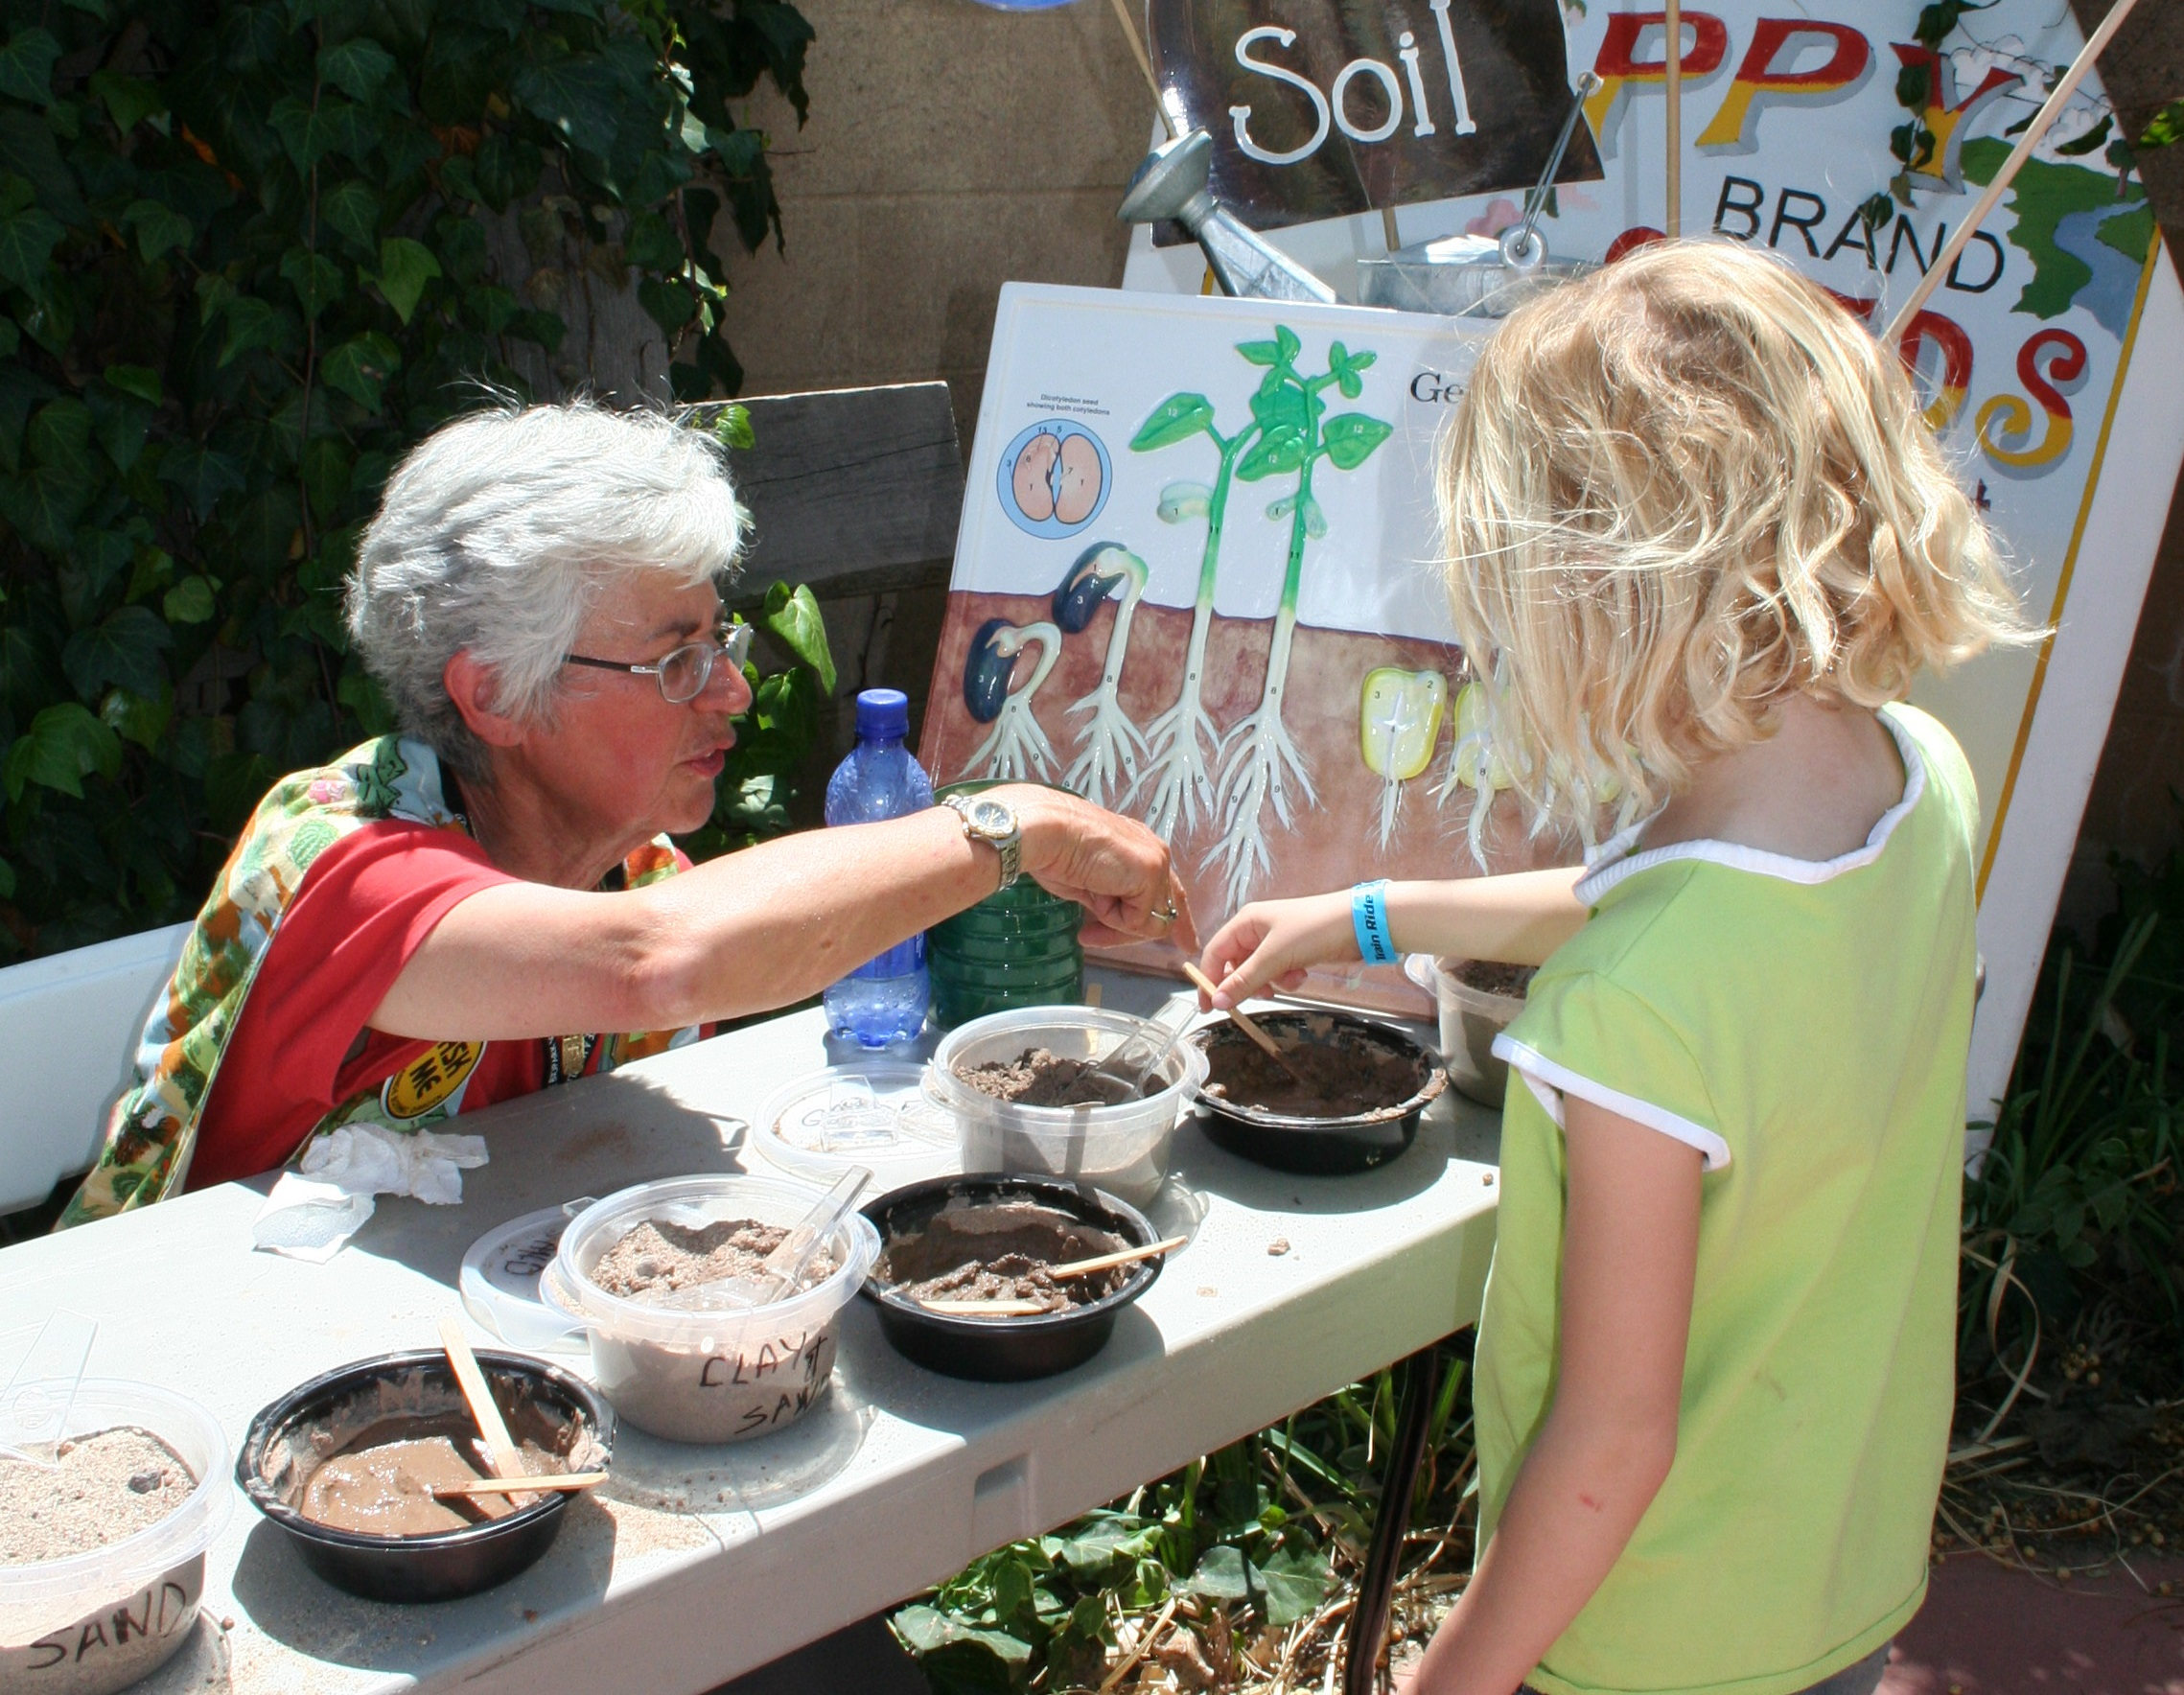 A BioPark employee and a child talking about seeds.